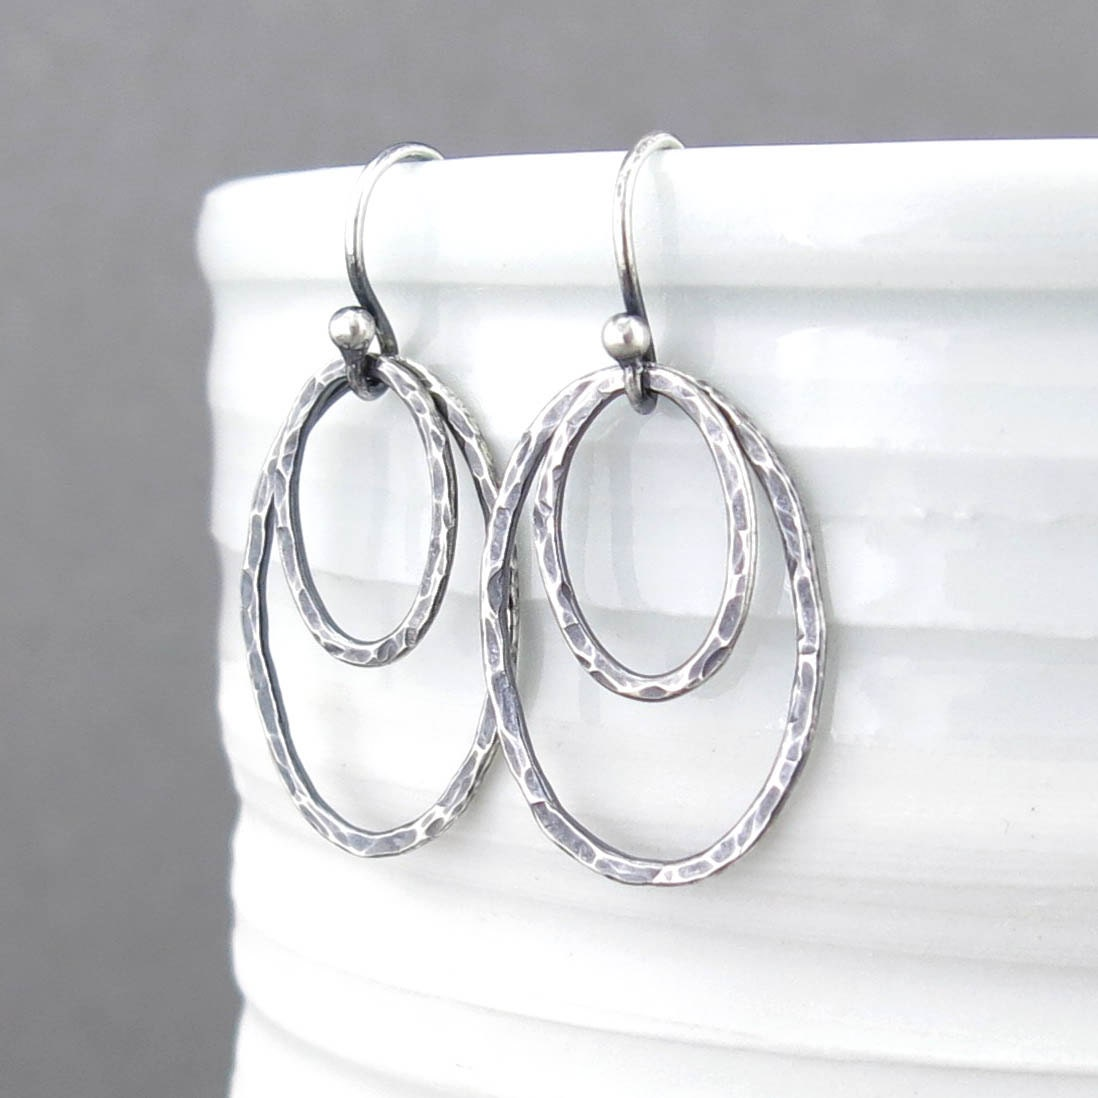 Contemporary Silvers: Modern Silver Earrings Oval Earrings Silver Drop Earrings